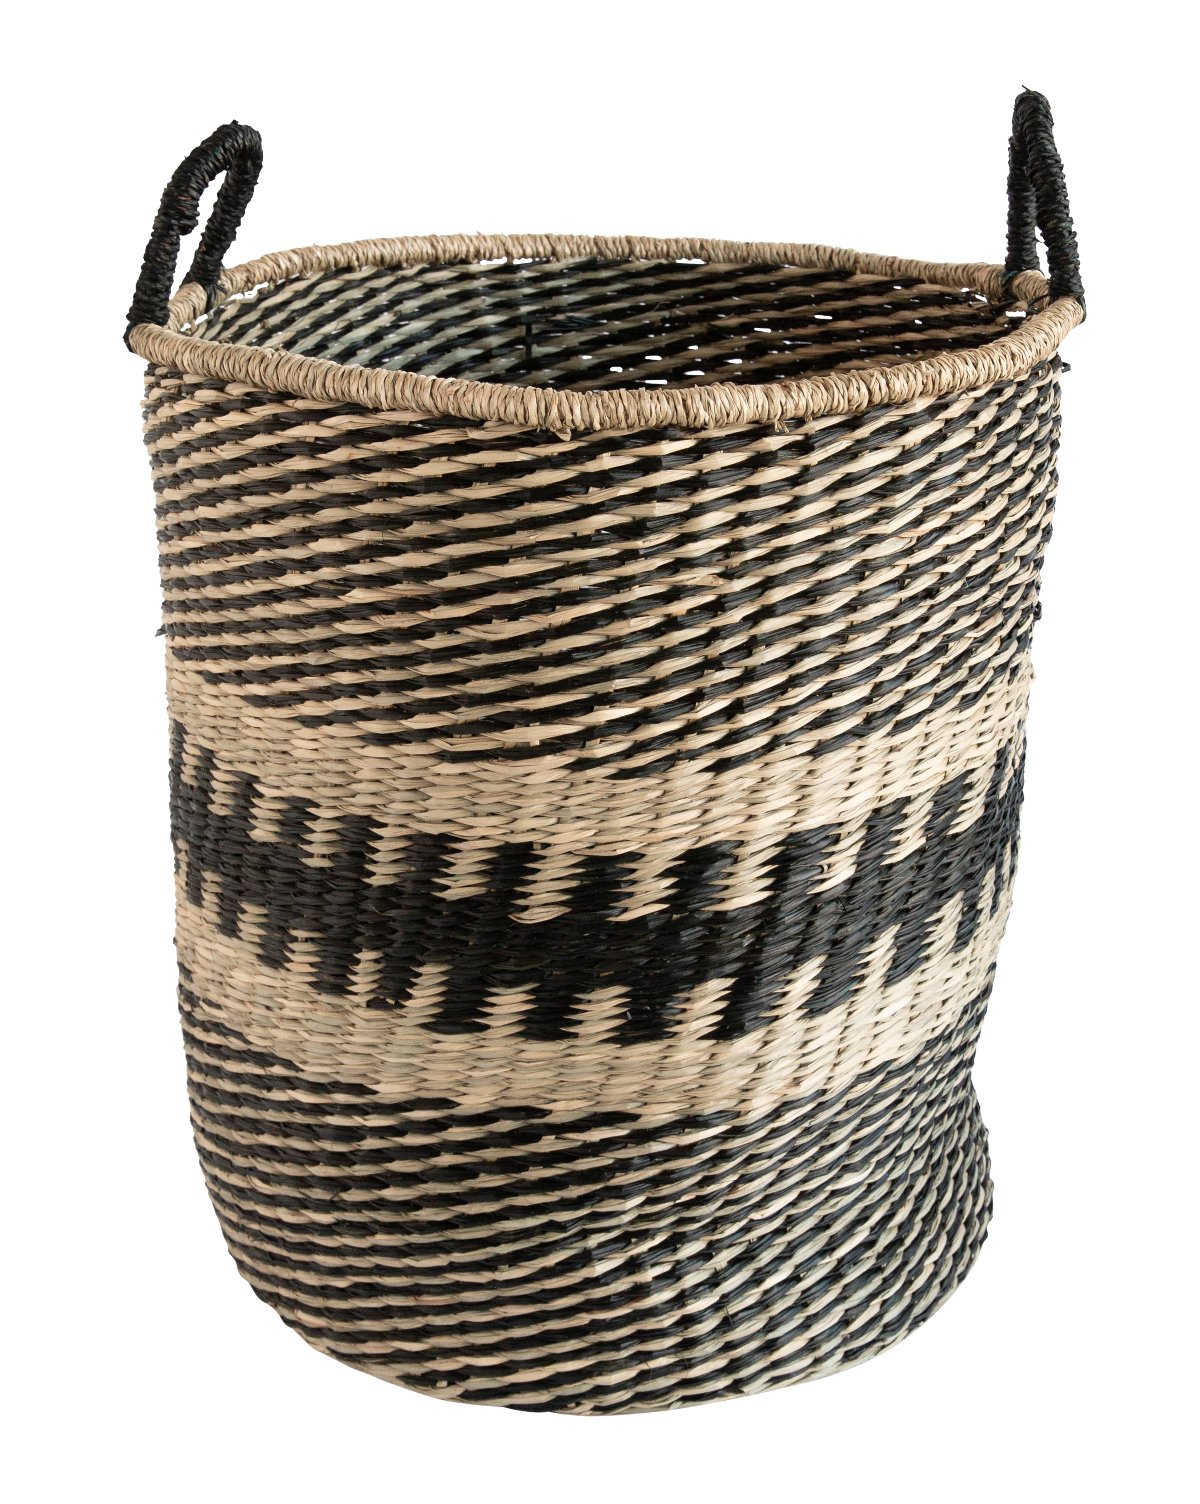 Seagrass_Hamper_4.jpg